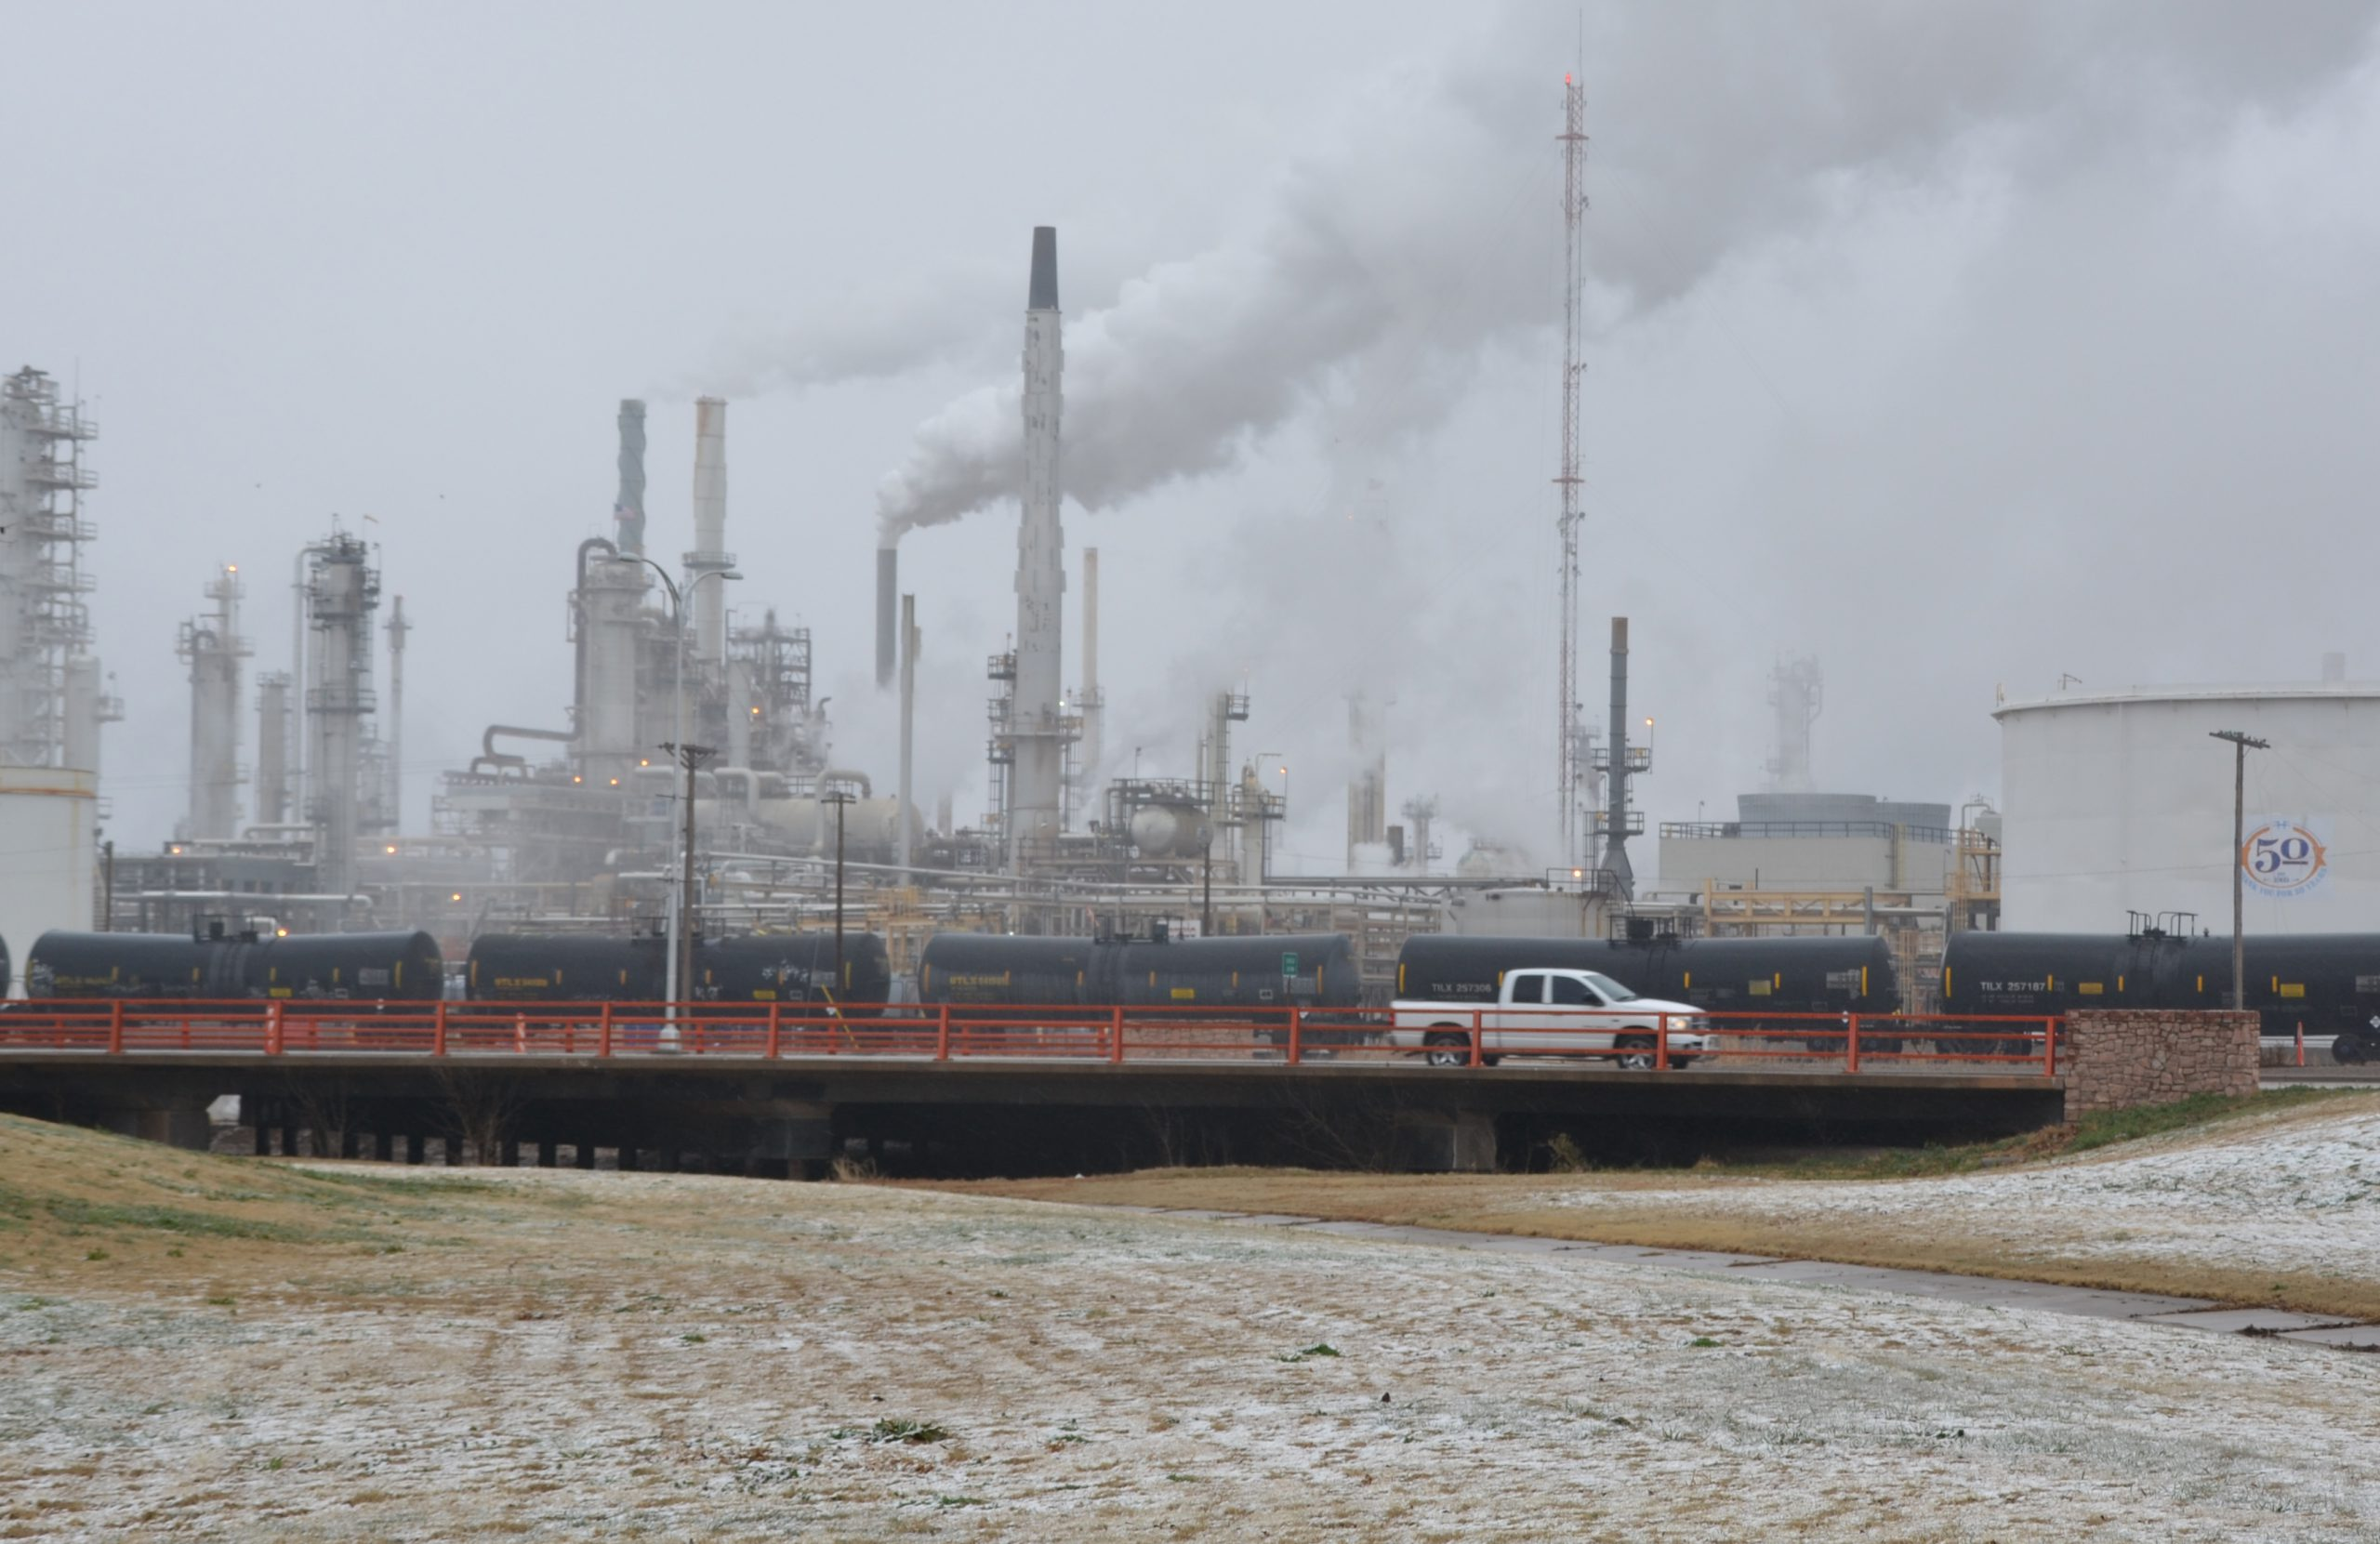 refinery with smokestacks